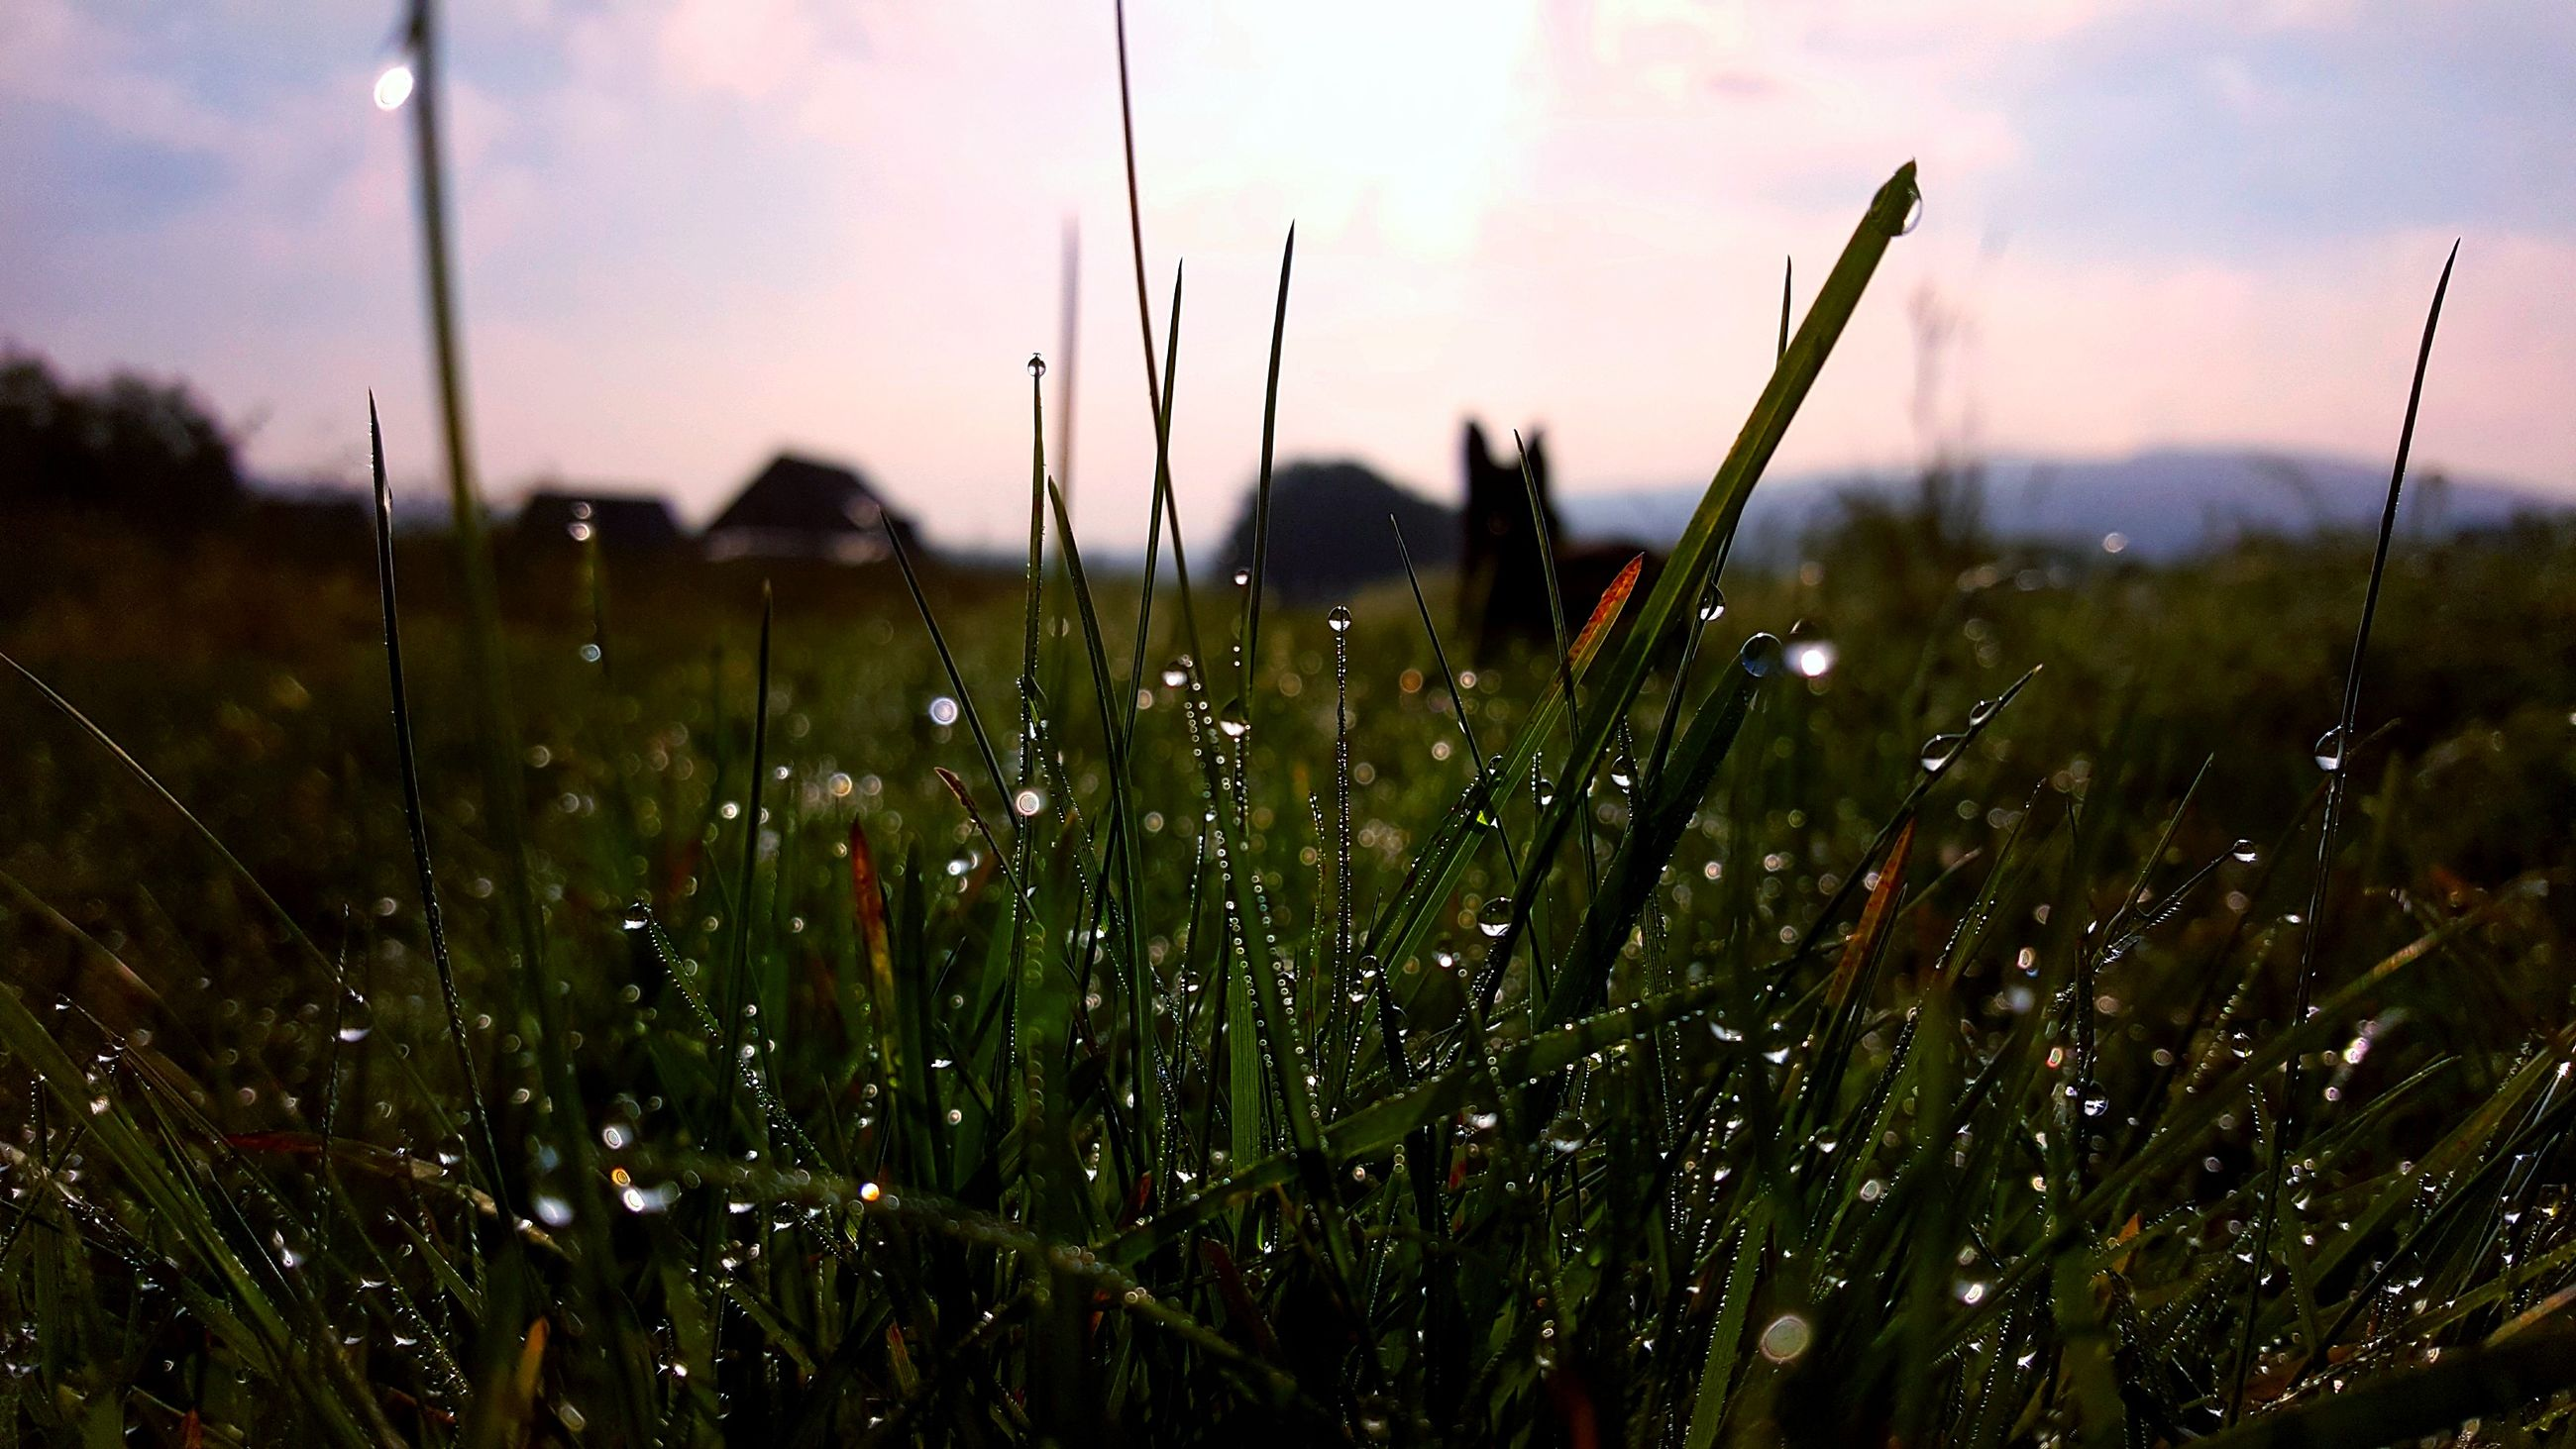 nature, growth, plant, beauty in nature, wet, sunset, sky, no people, grass, outdoors, flower, water, fragility, close-up, freshness, day